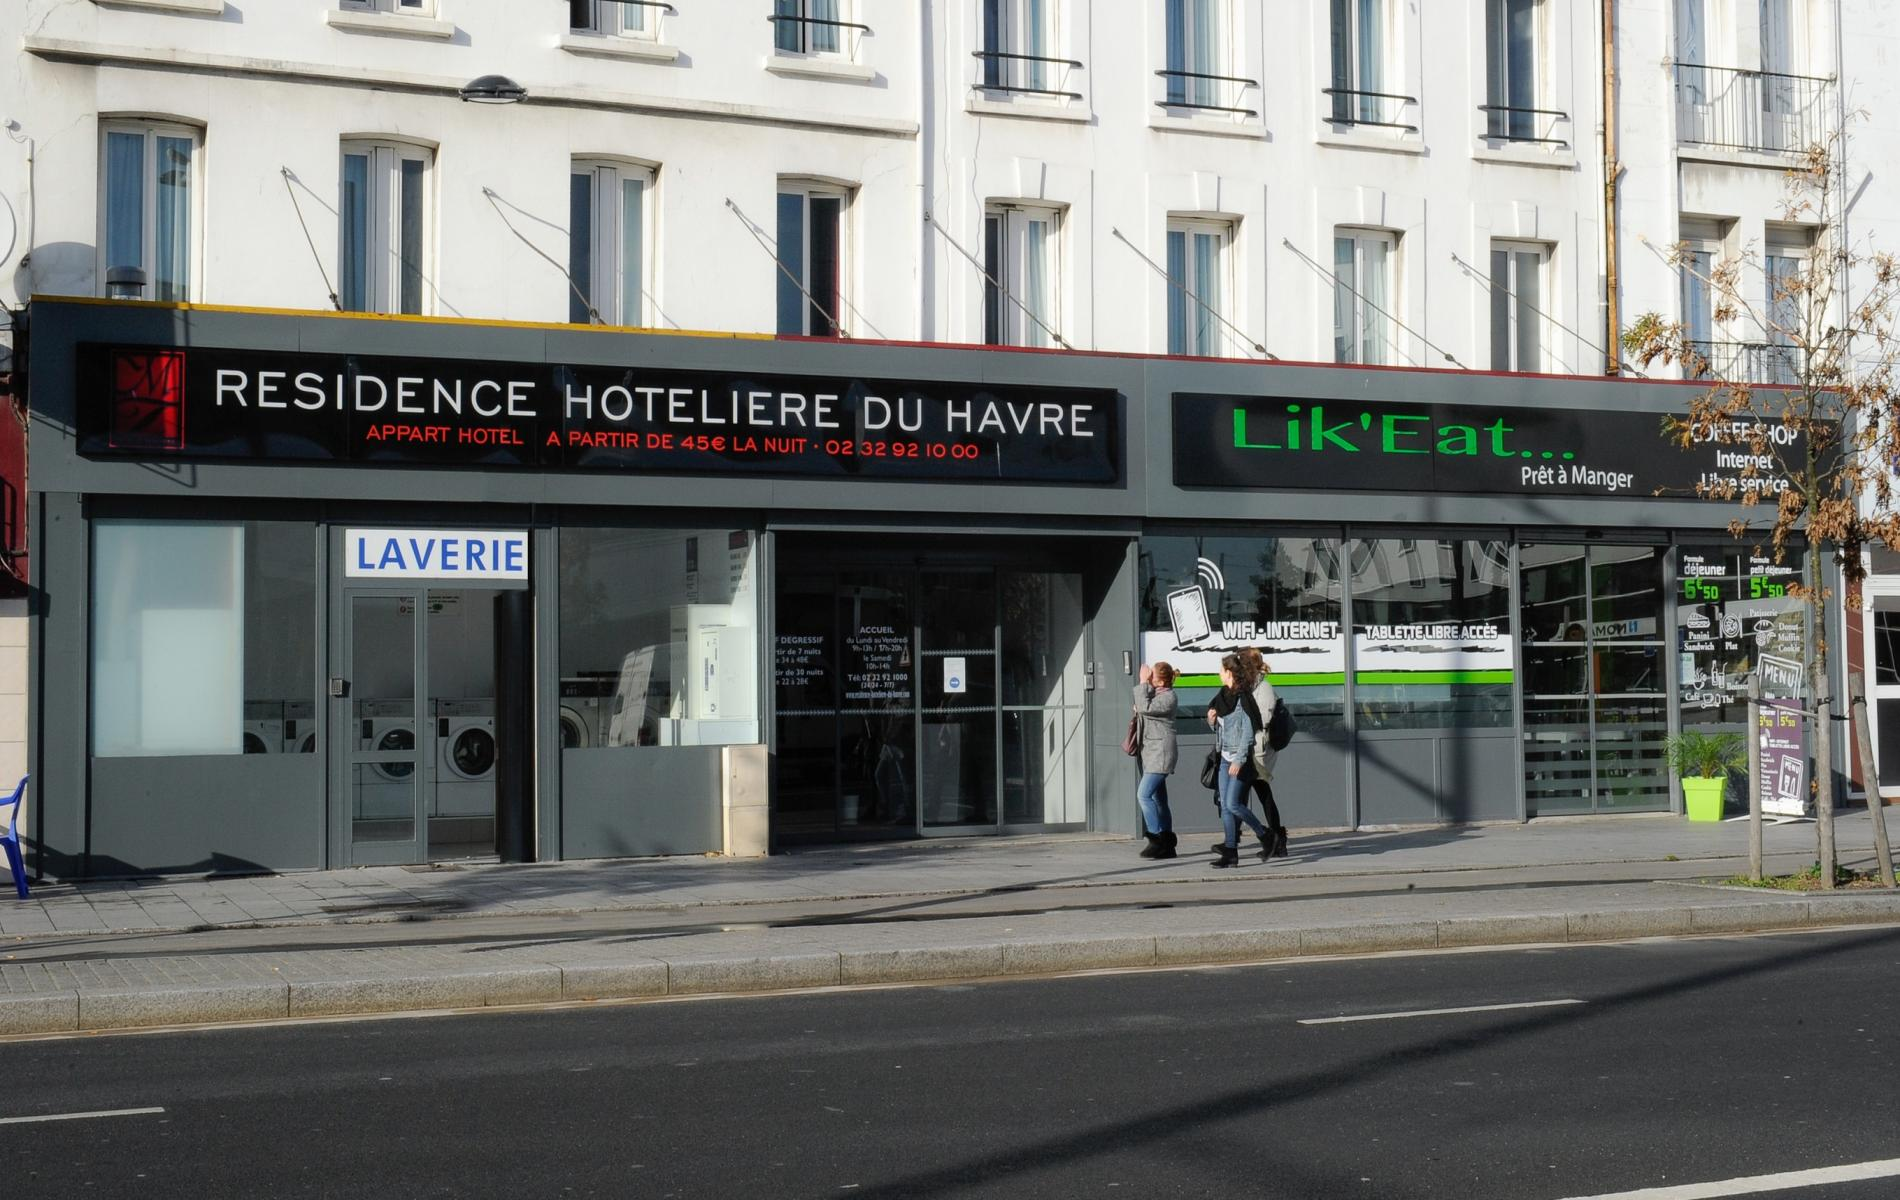 appart hotel le havre residence hoteliere le havre appart pas cher. Black Bedroom Furniture Sets. Home Design Ideas